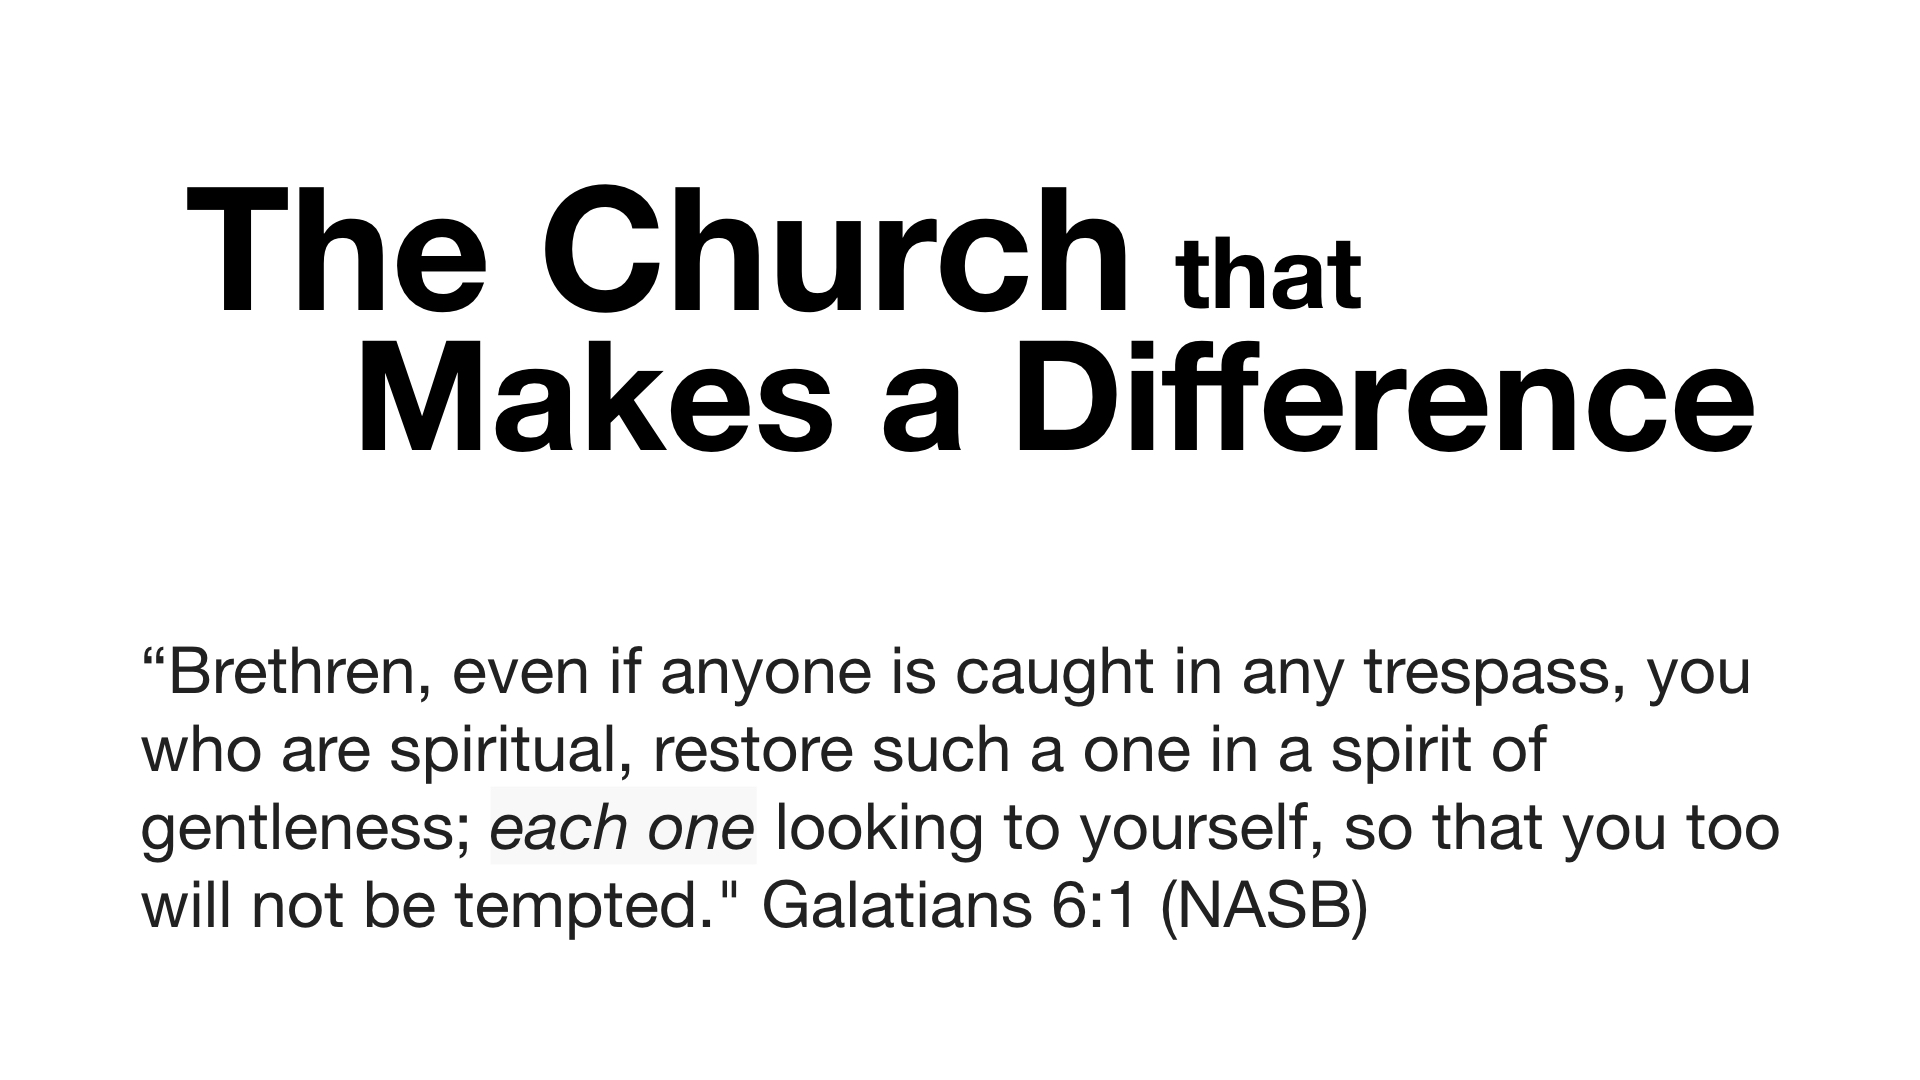 The Church that Makes a Difference